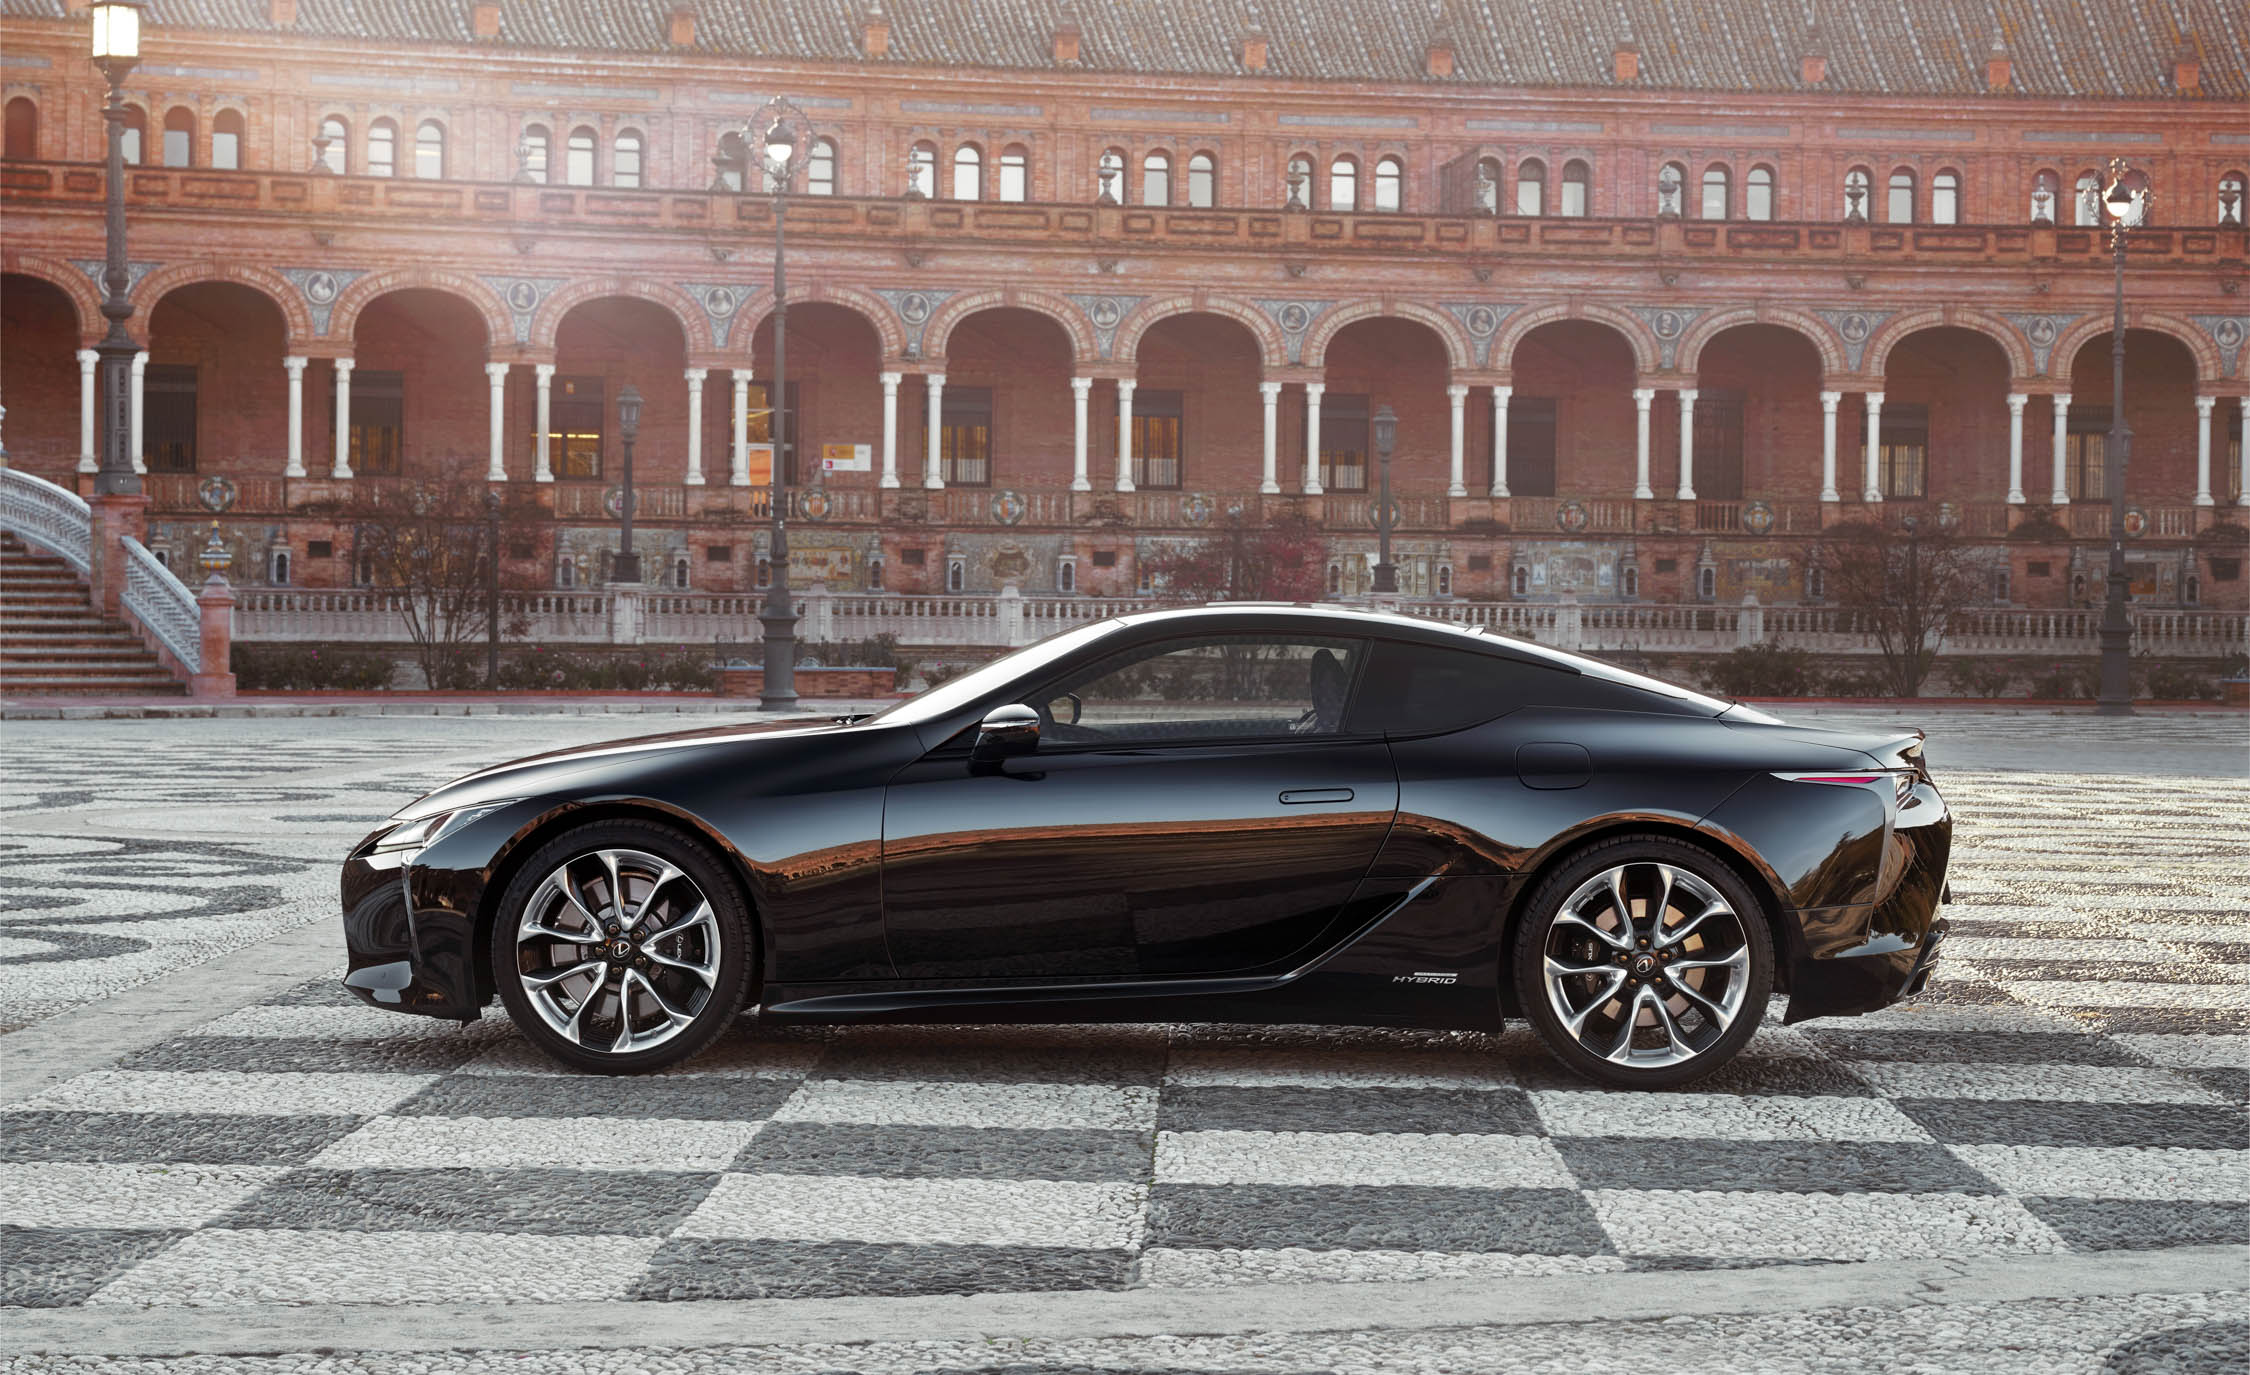 2018 Lexus Lc 500h Black Exterior Side (View 56 of 84)